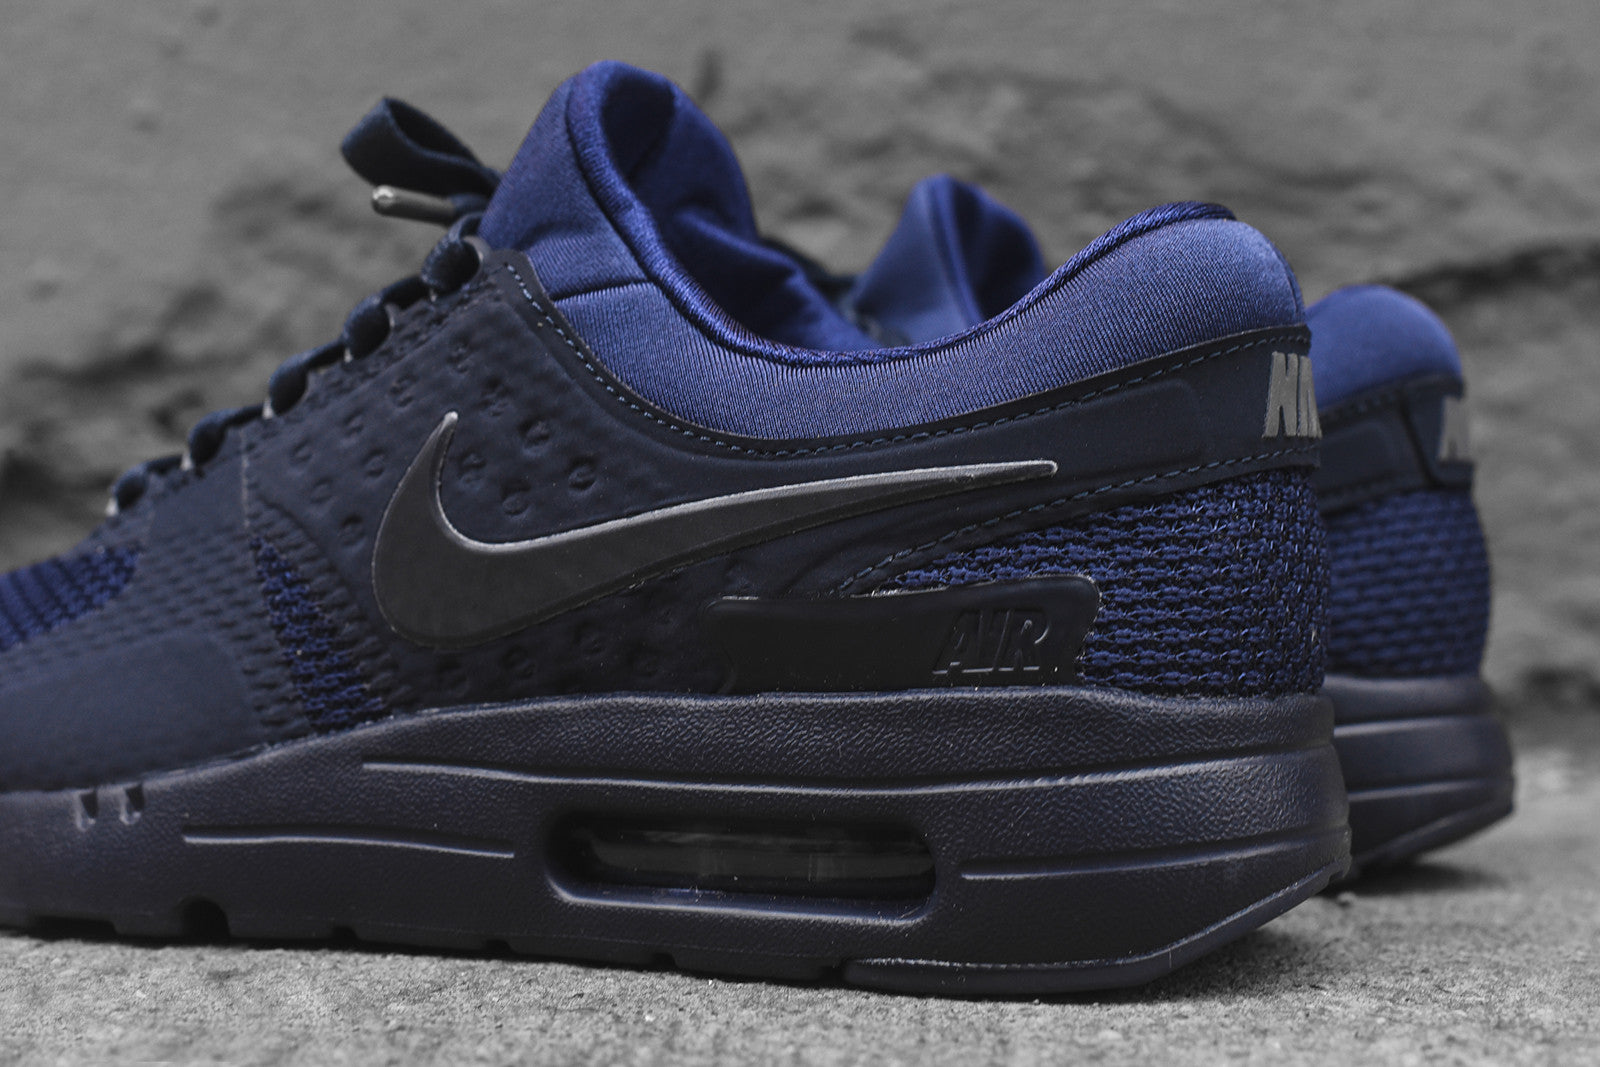 Nike Air Max Zero QS - Blue